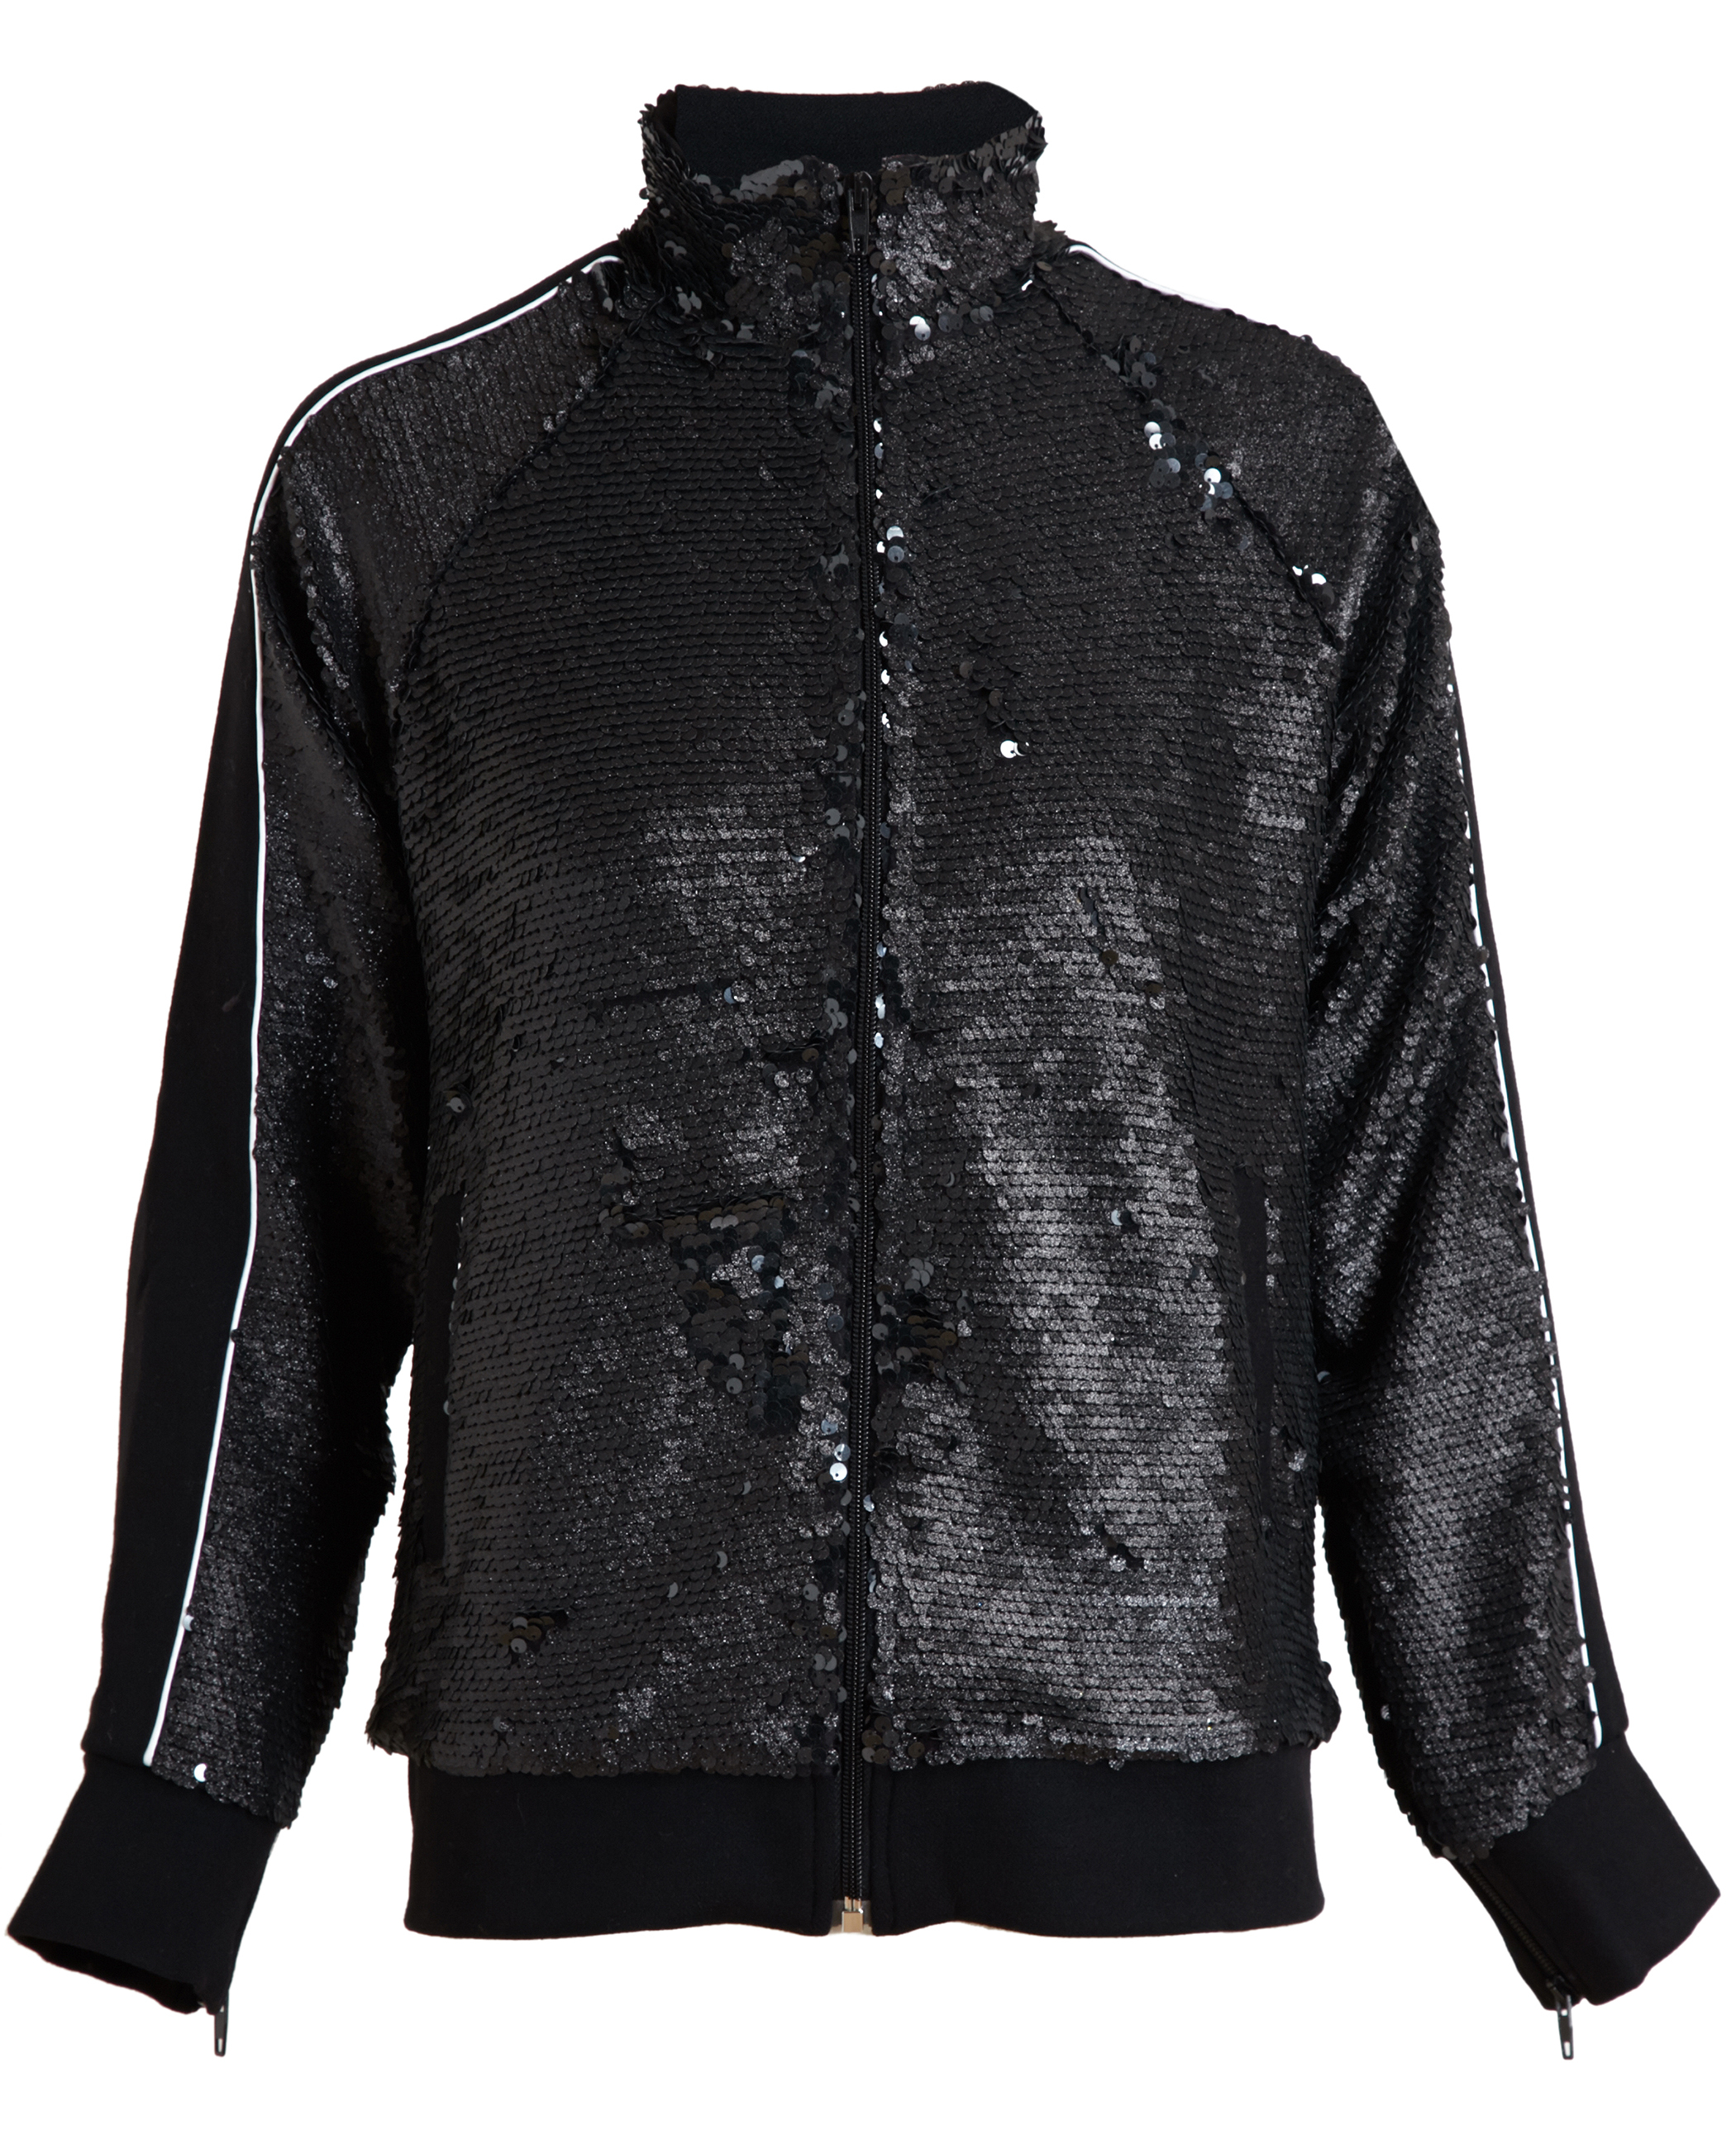 This black sequin jacket is the perfect fit for a popstar costume. Includes: Jacket; Available in Sizes: Small - Fits jacket size. Medium - Fits jacket size.